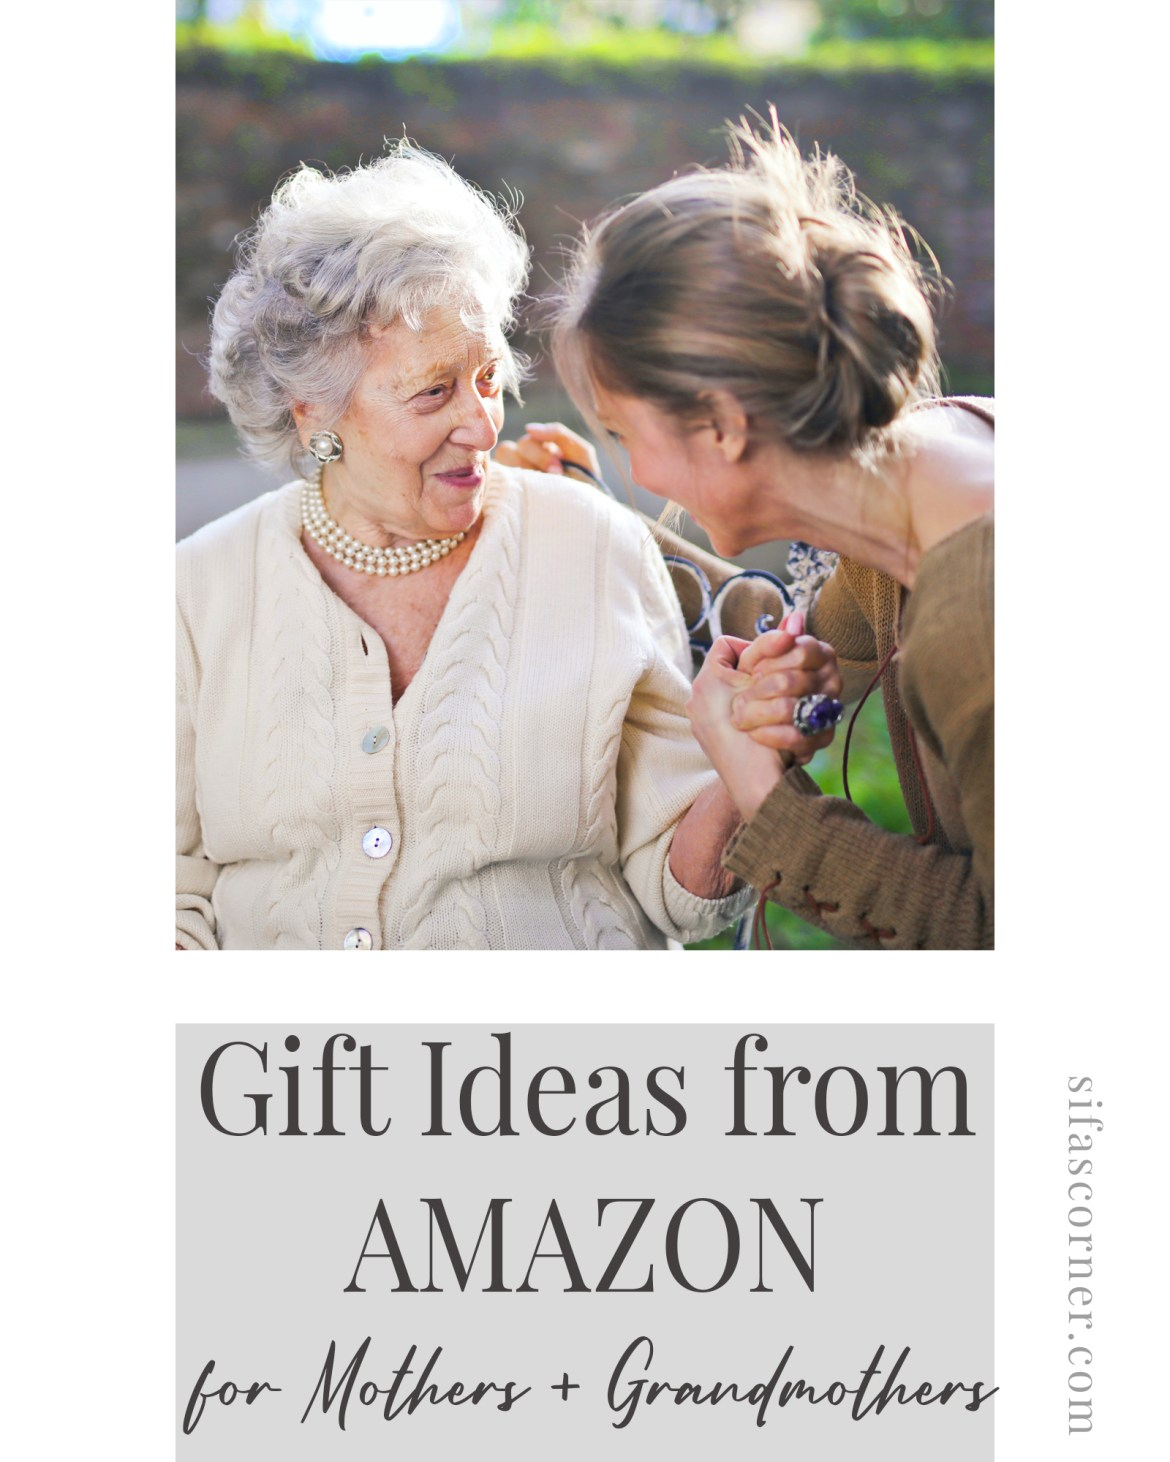 Gift Ideas for Mothers and Grandmothers from Amazon: